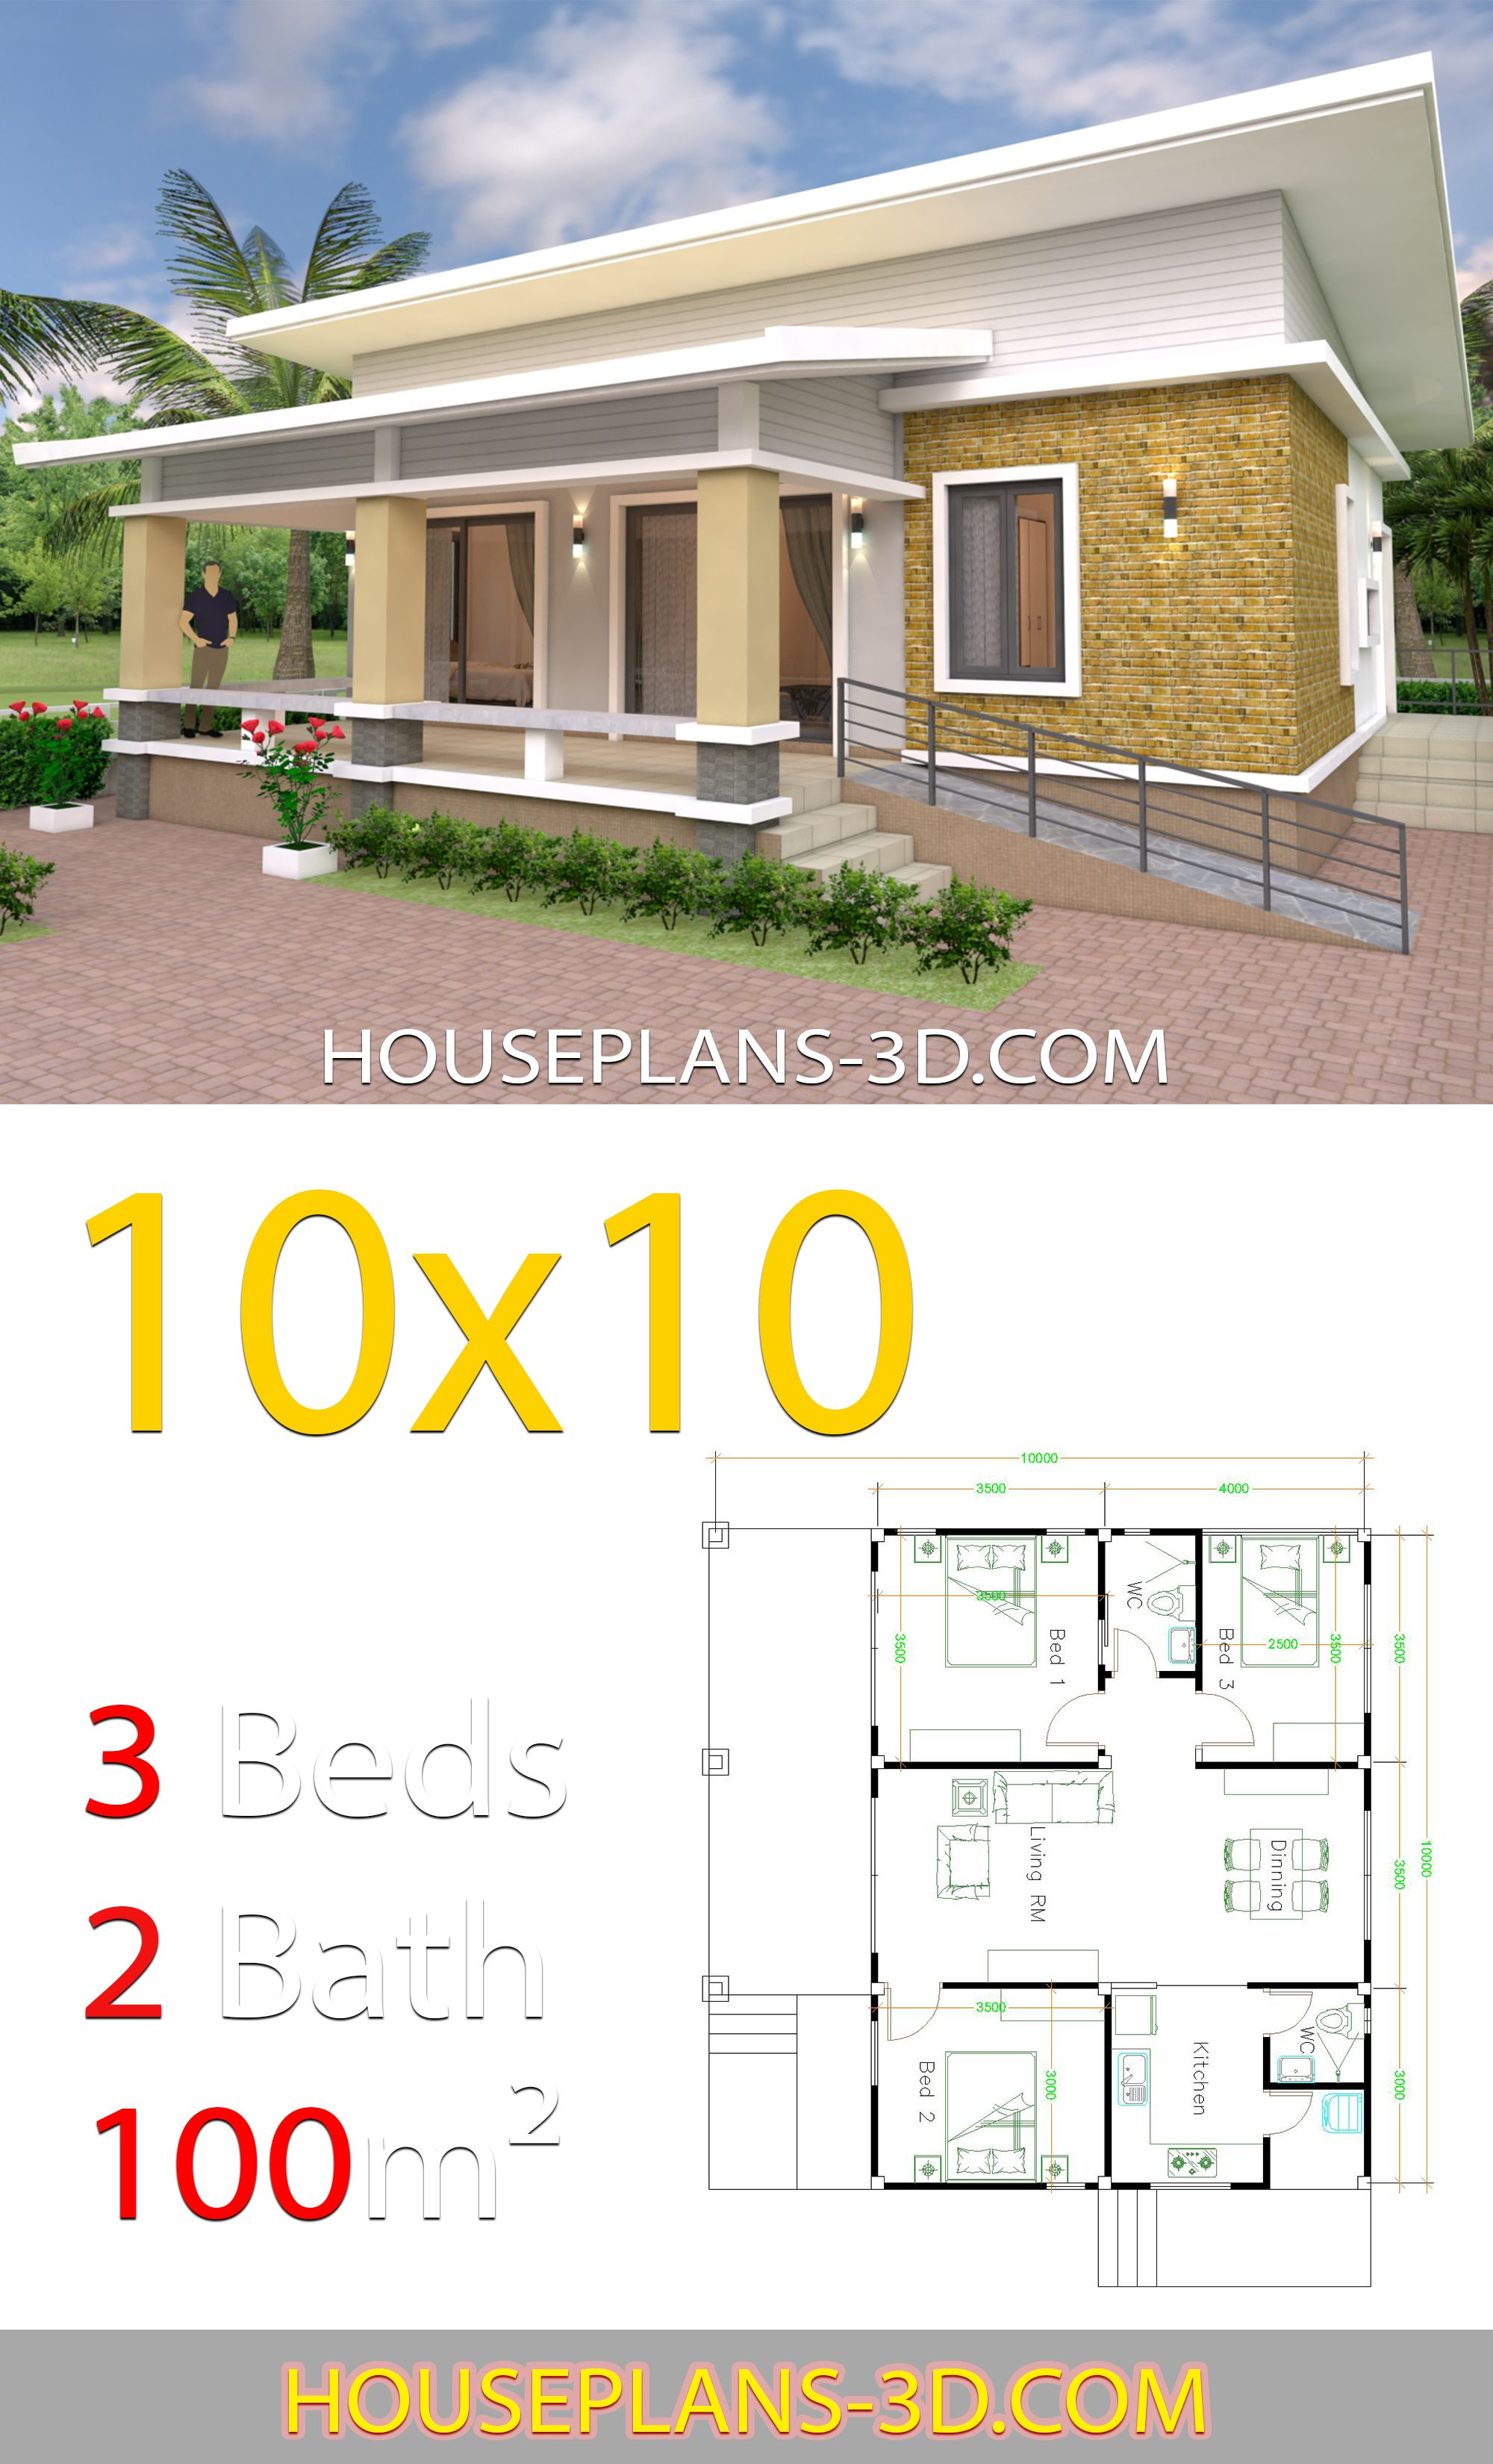 House Design Plans 10x10 With 3 Bedrooms Full Interior House Plans 3d Architectural House Plans Bungalow House Design My House Plans